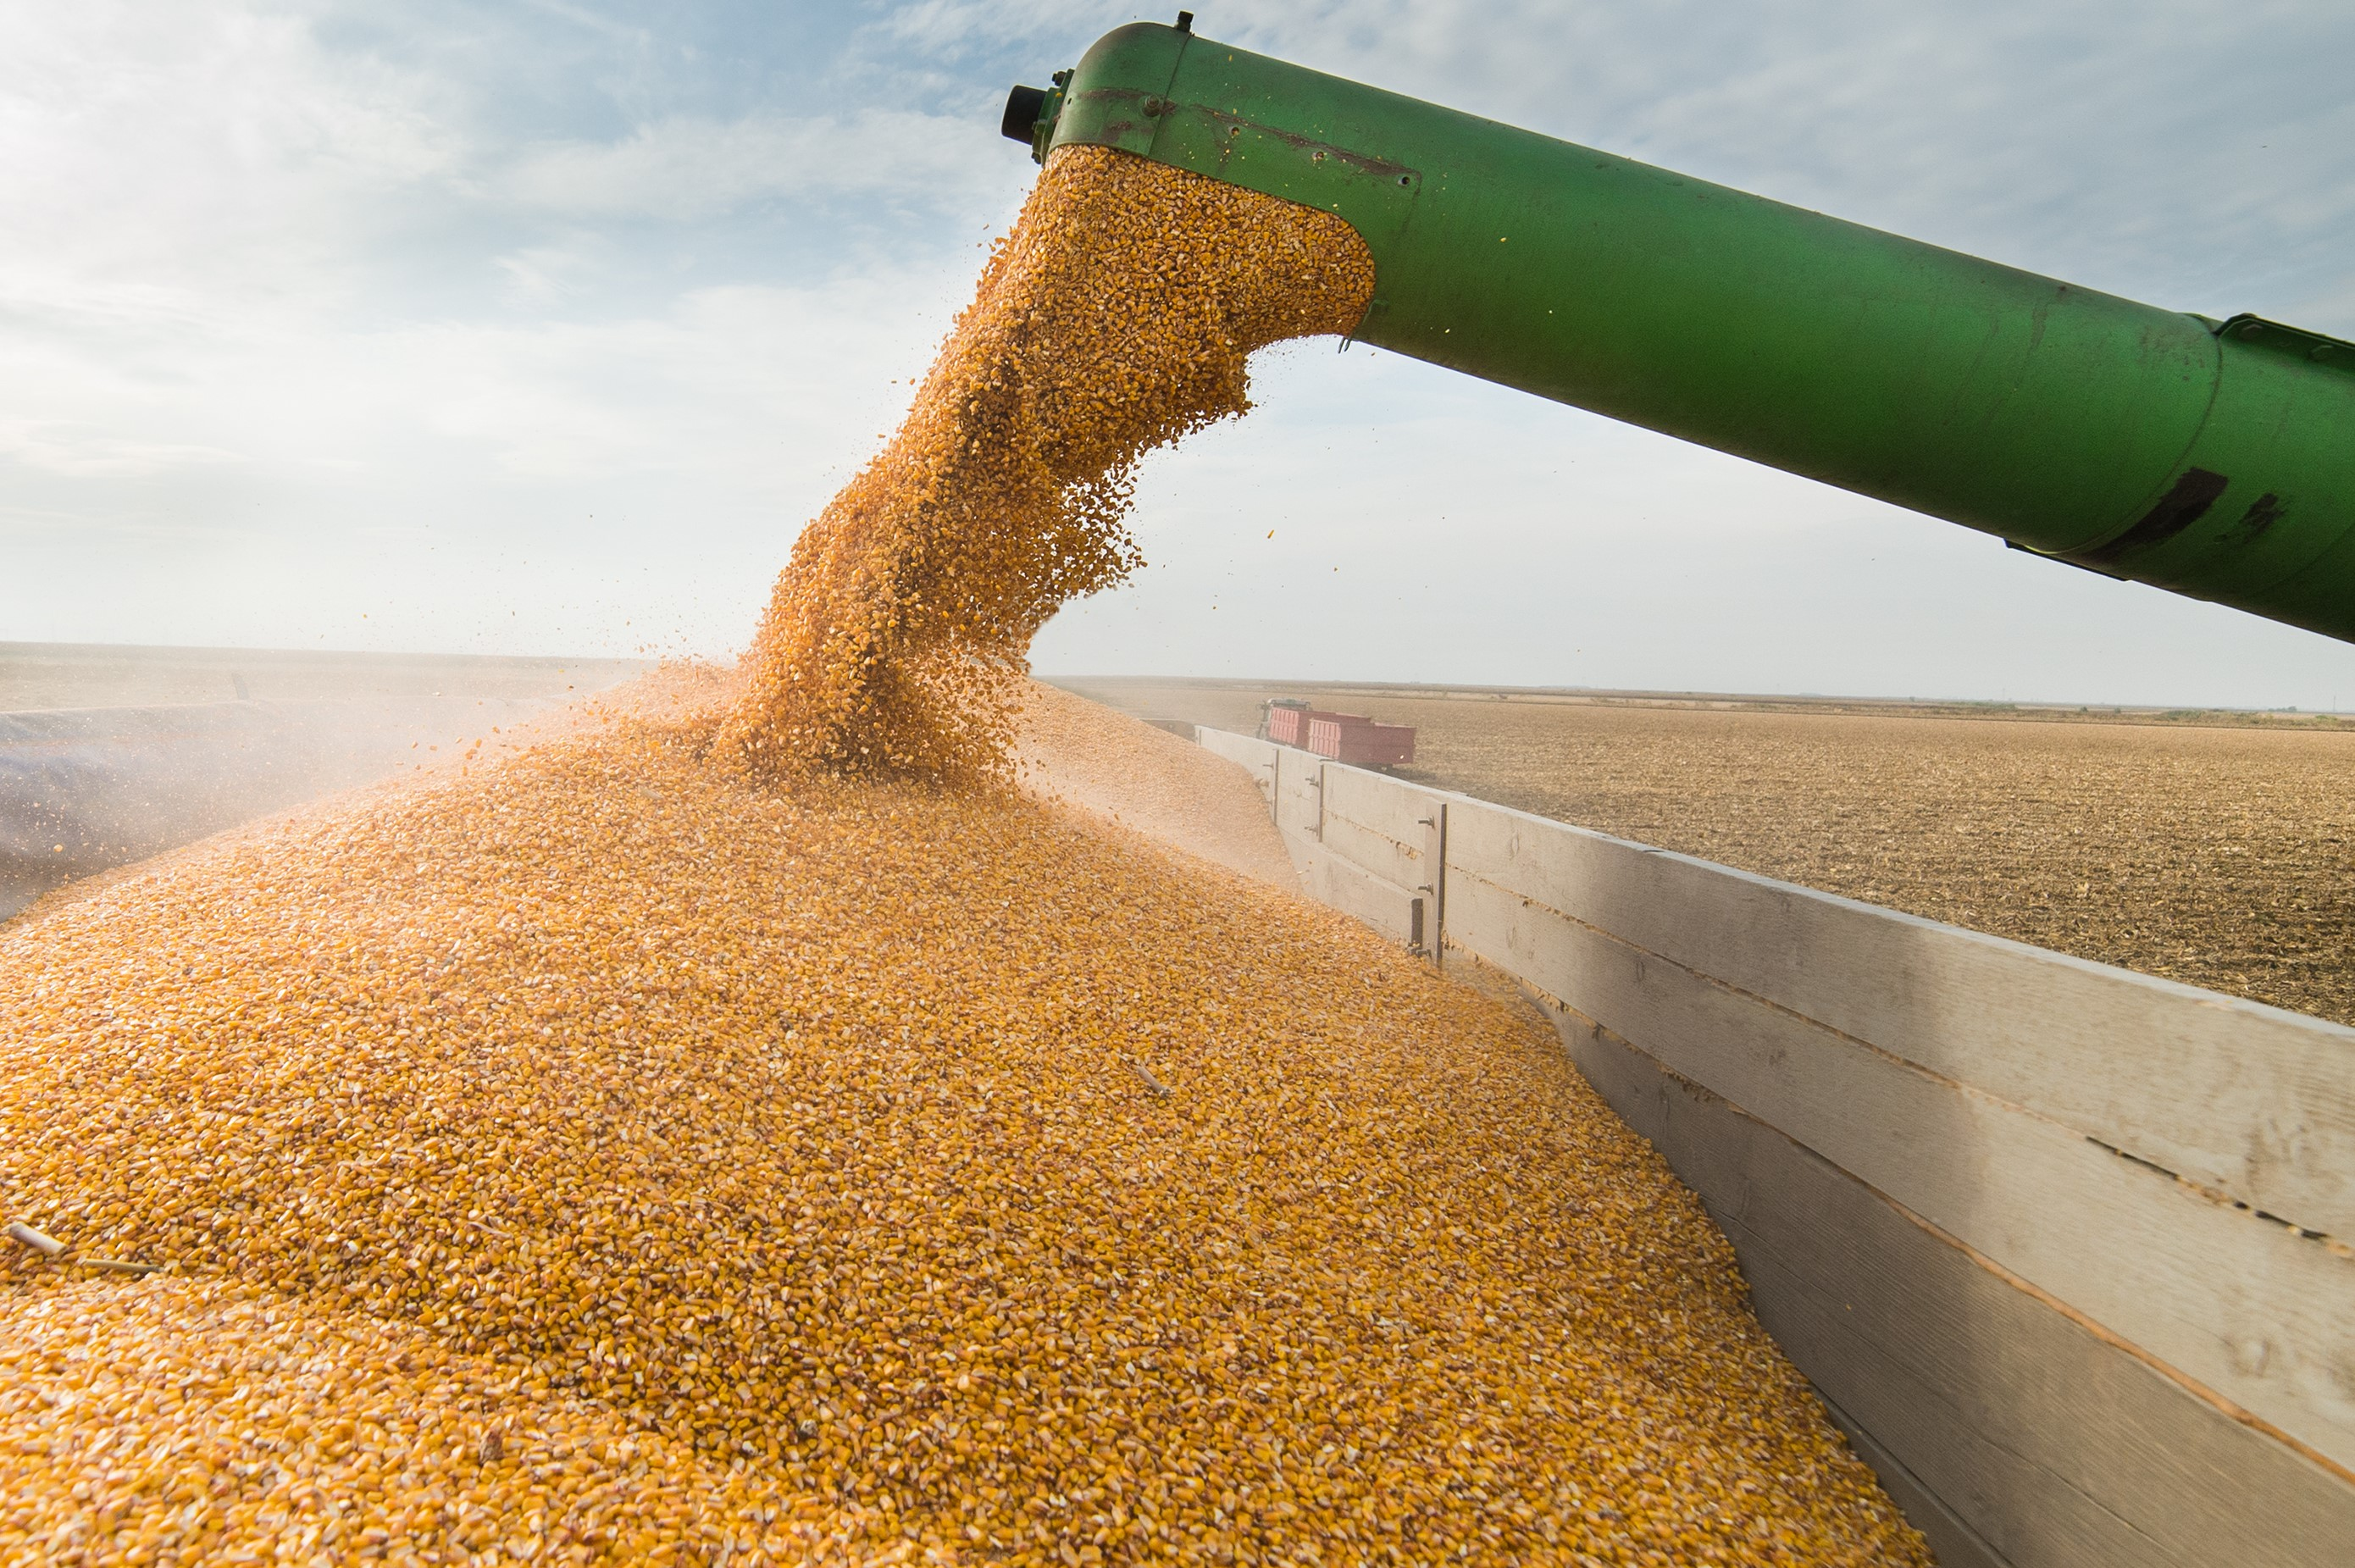 Are You Ready For Wet Grain?